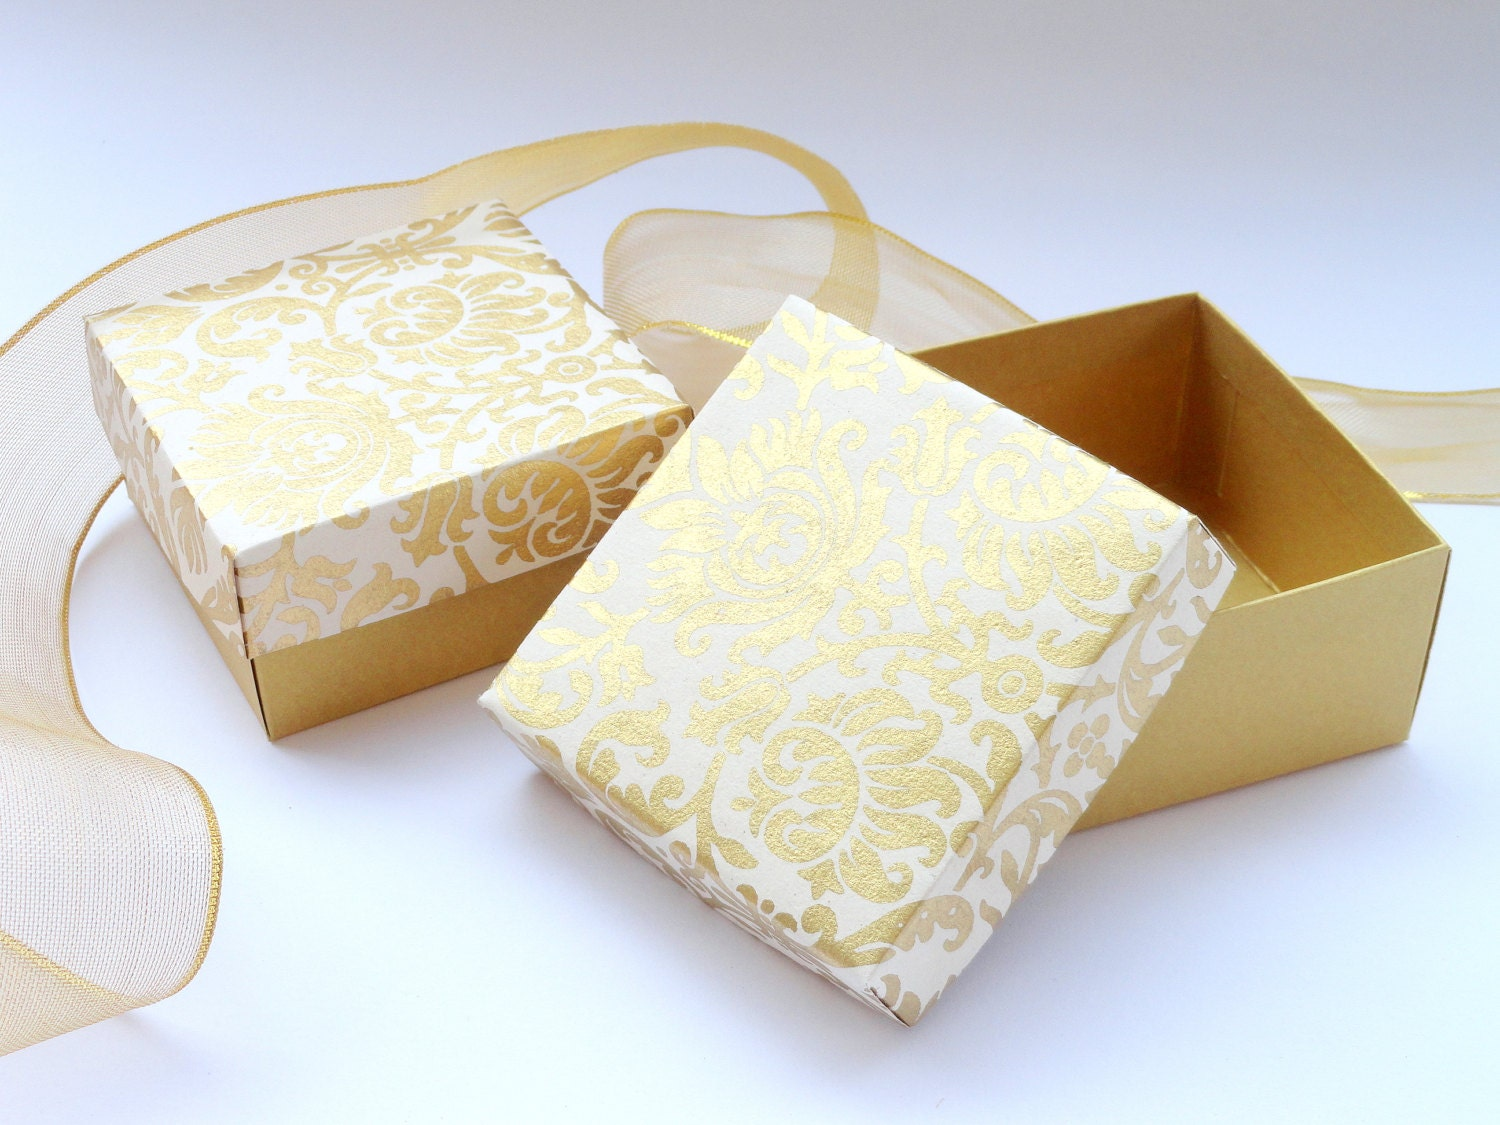 100 boxes in Gold Damask Print on Ivory 3 x 3 x 1.5 inch Wedding ...